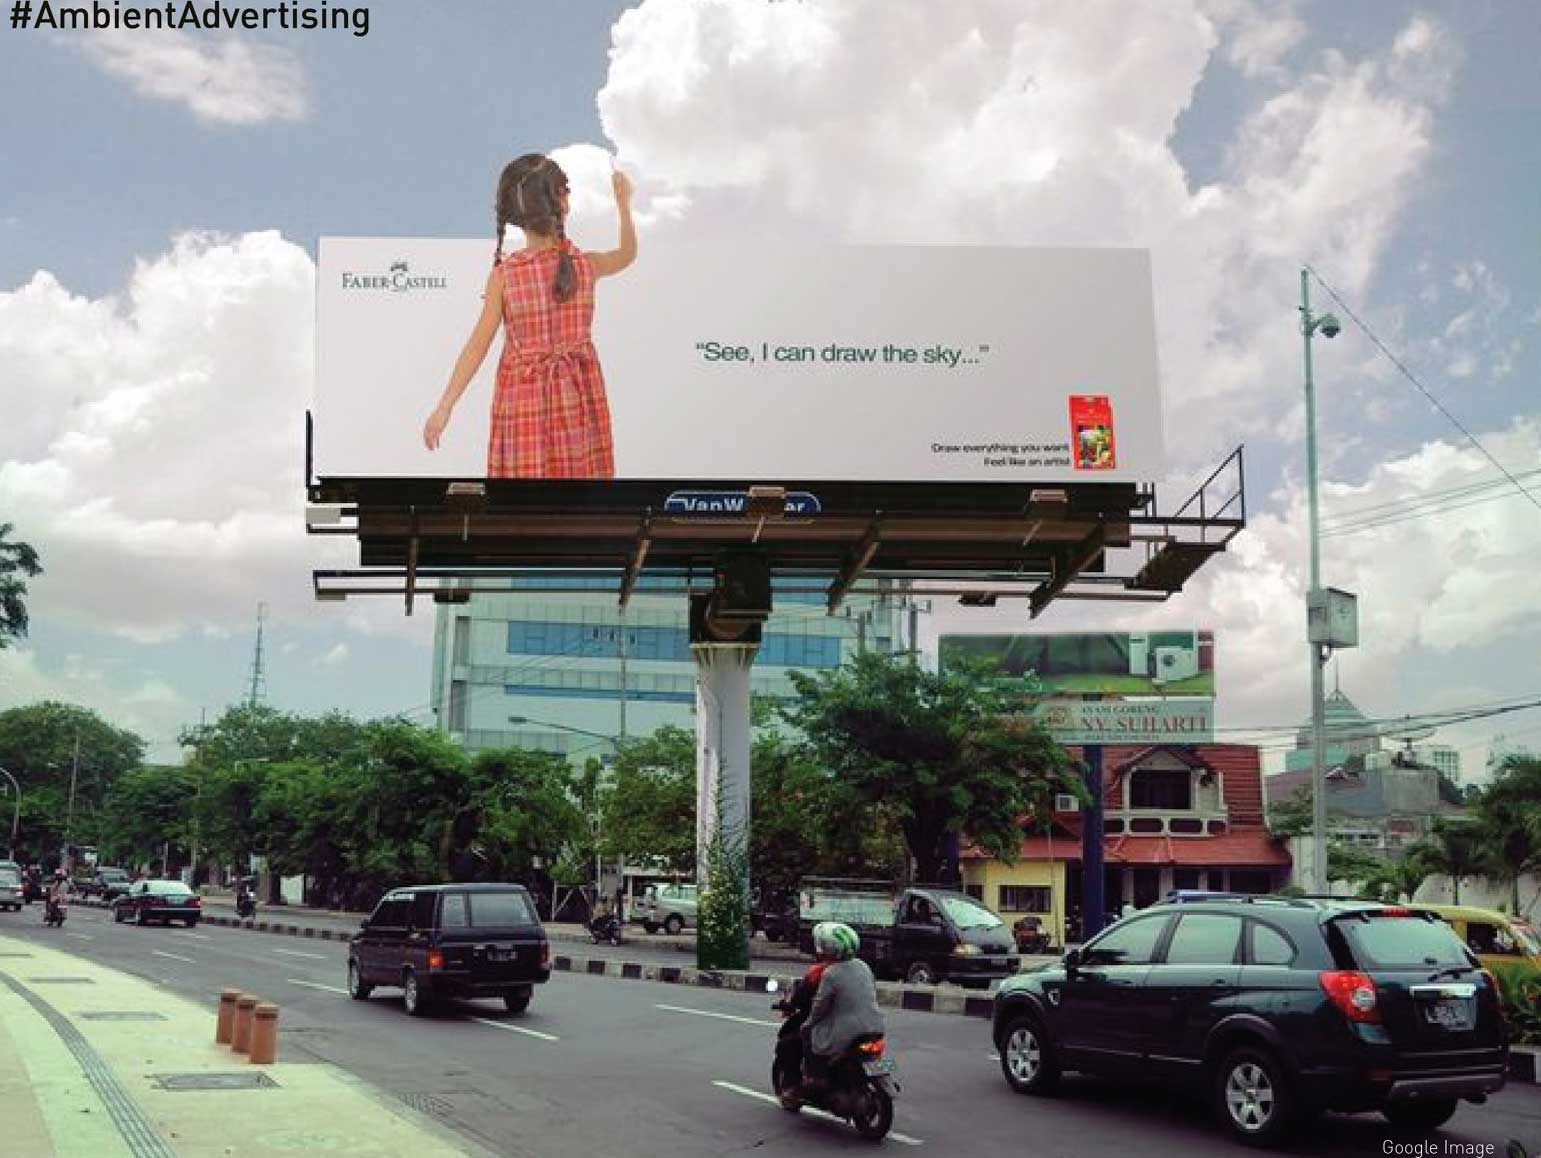 How to get started with your Outdoor Advertising